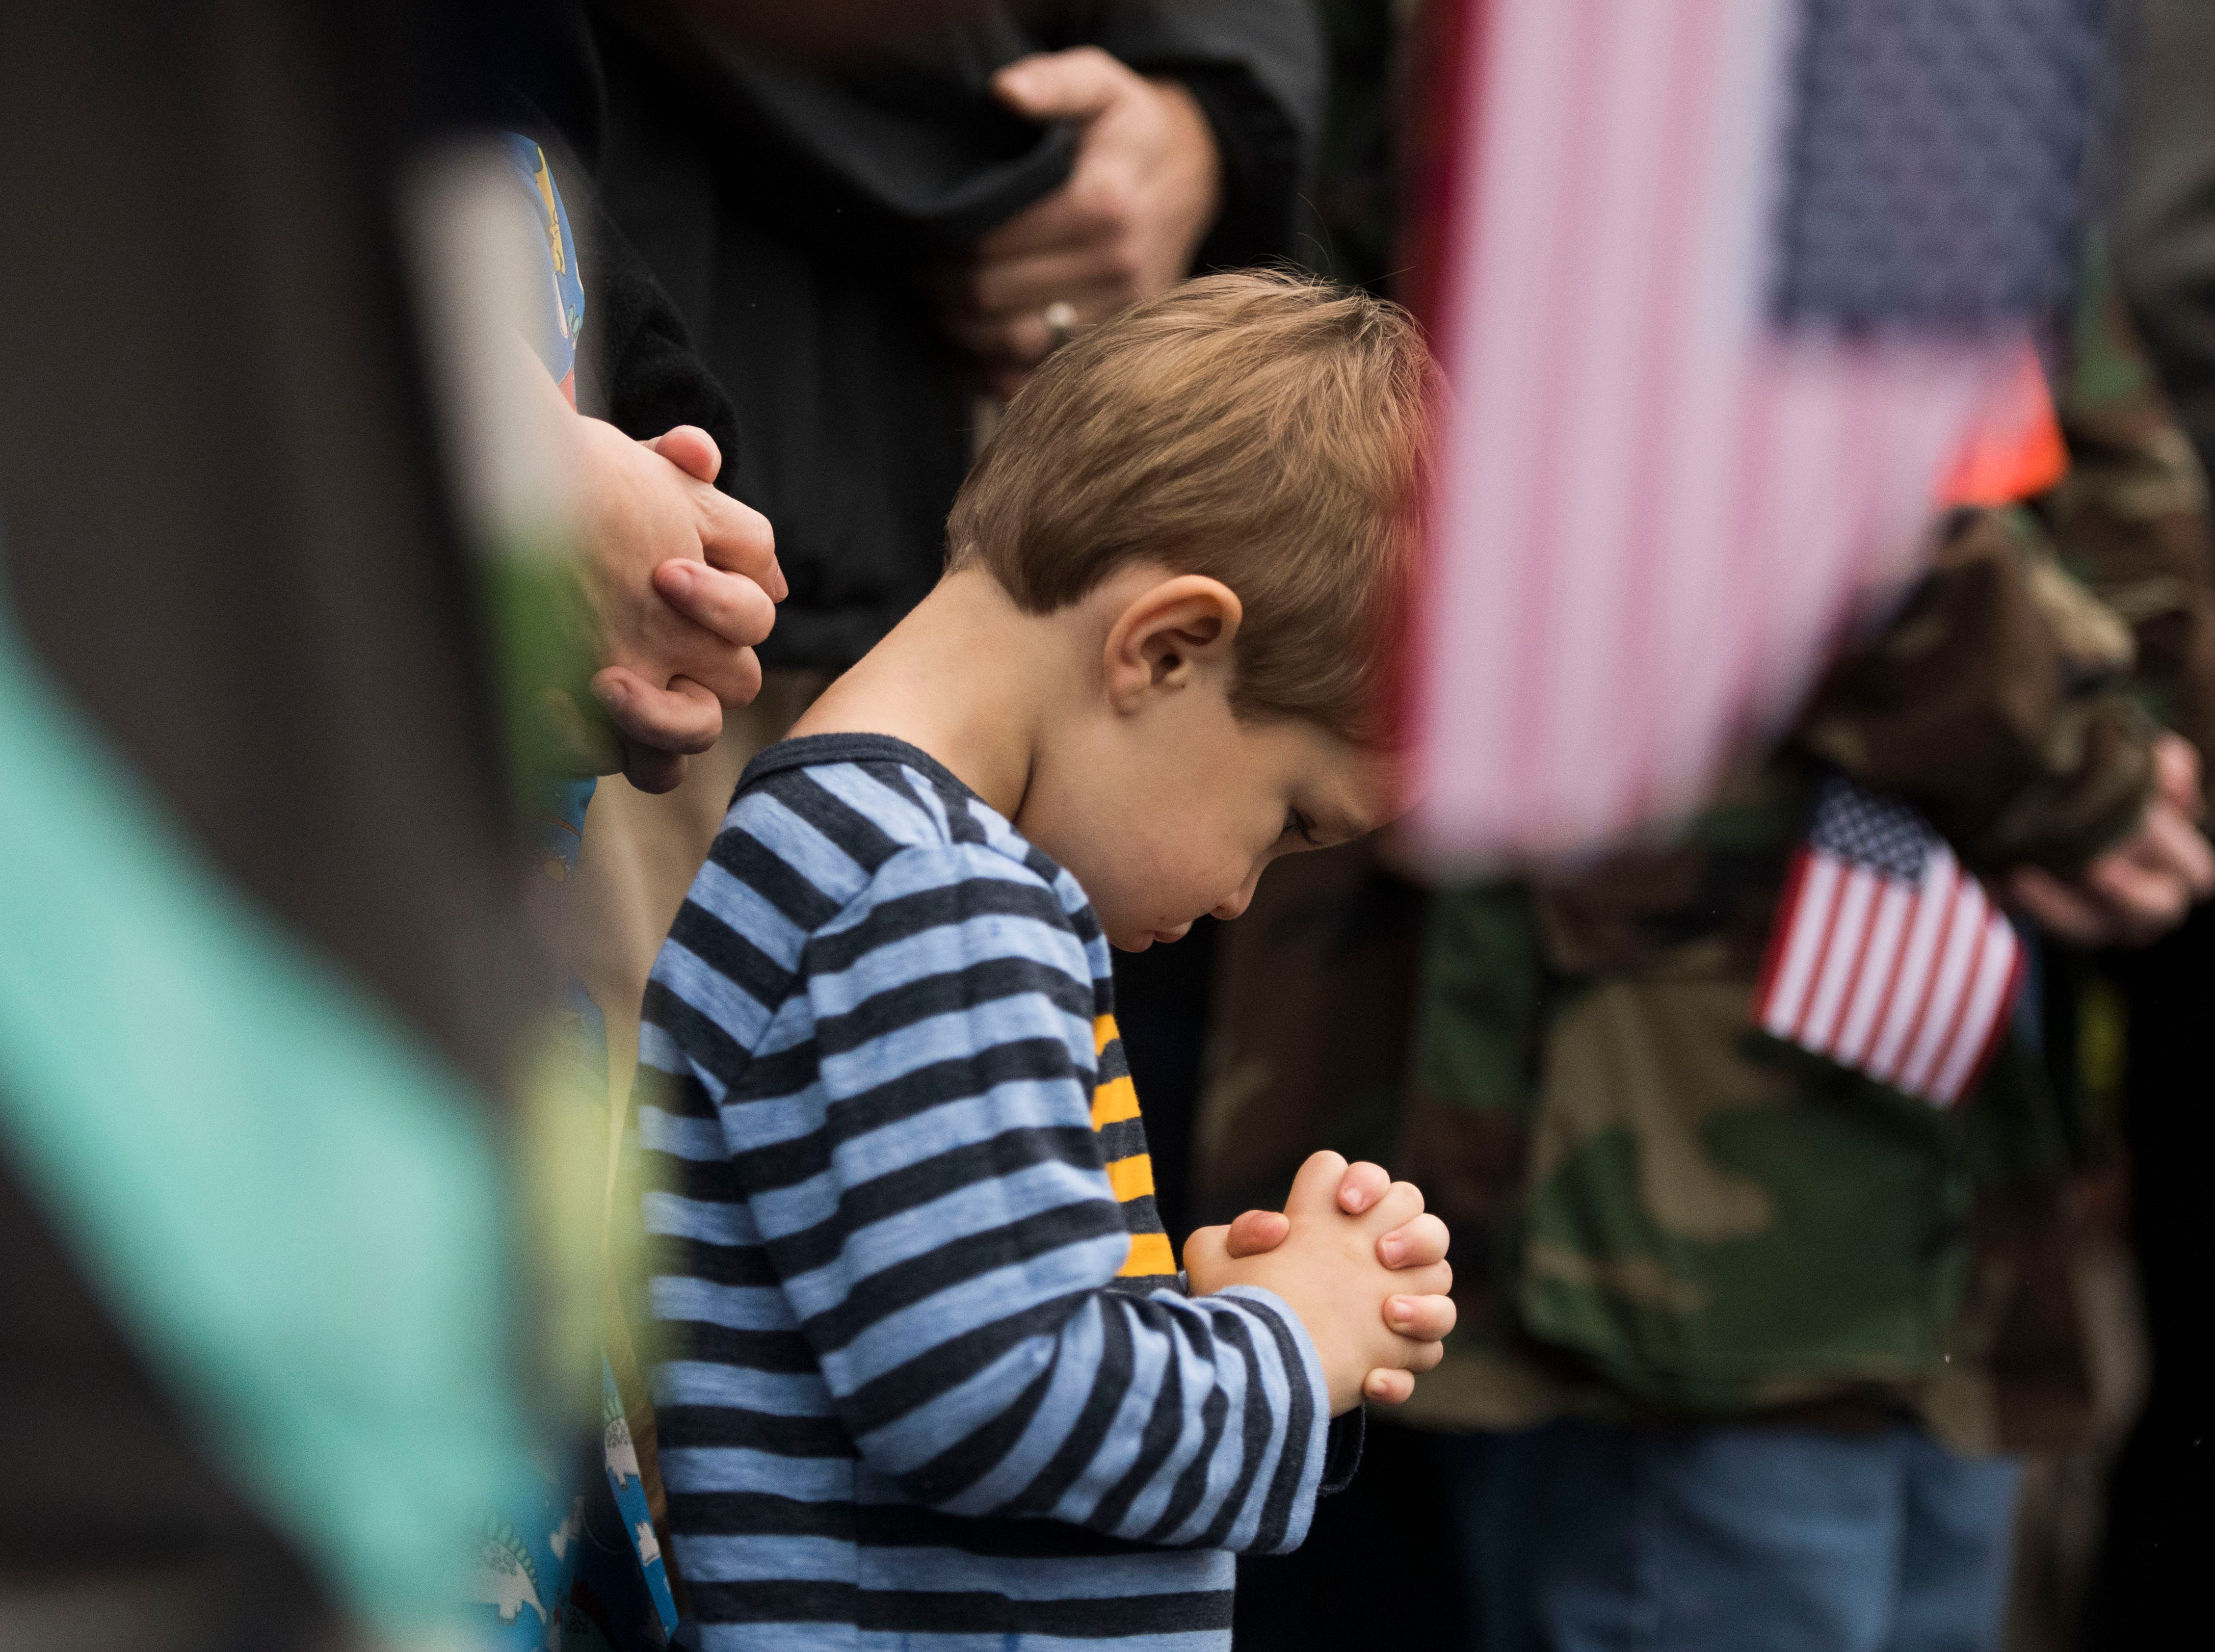 Lincoln Walker, 3, bows his head for a prayer during a Wreaths Across America ceremony at Knoxville National Cemetery north of downtown Knoxville Saturday, Dec. 15, 2018. Evergreen wreaths were placed on veteran headstones.